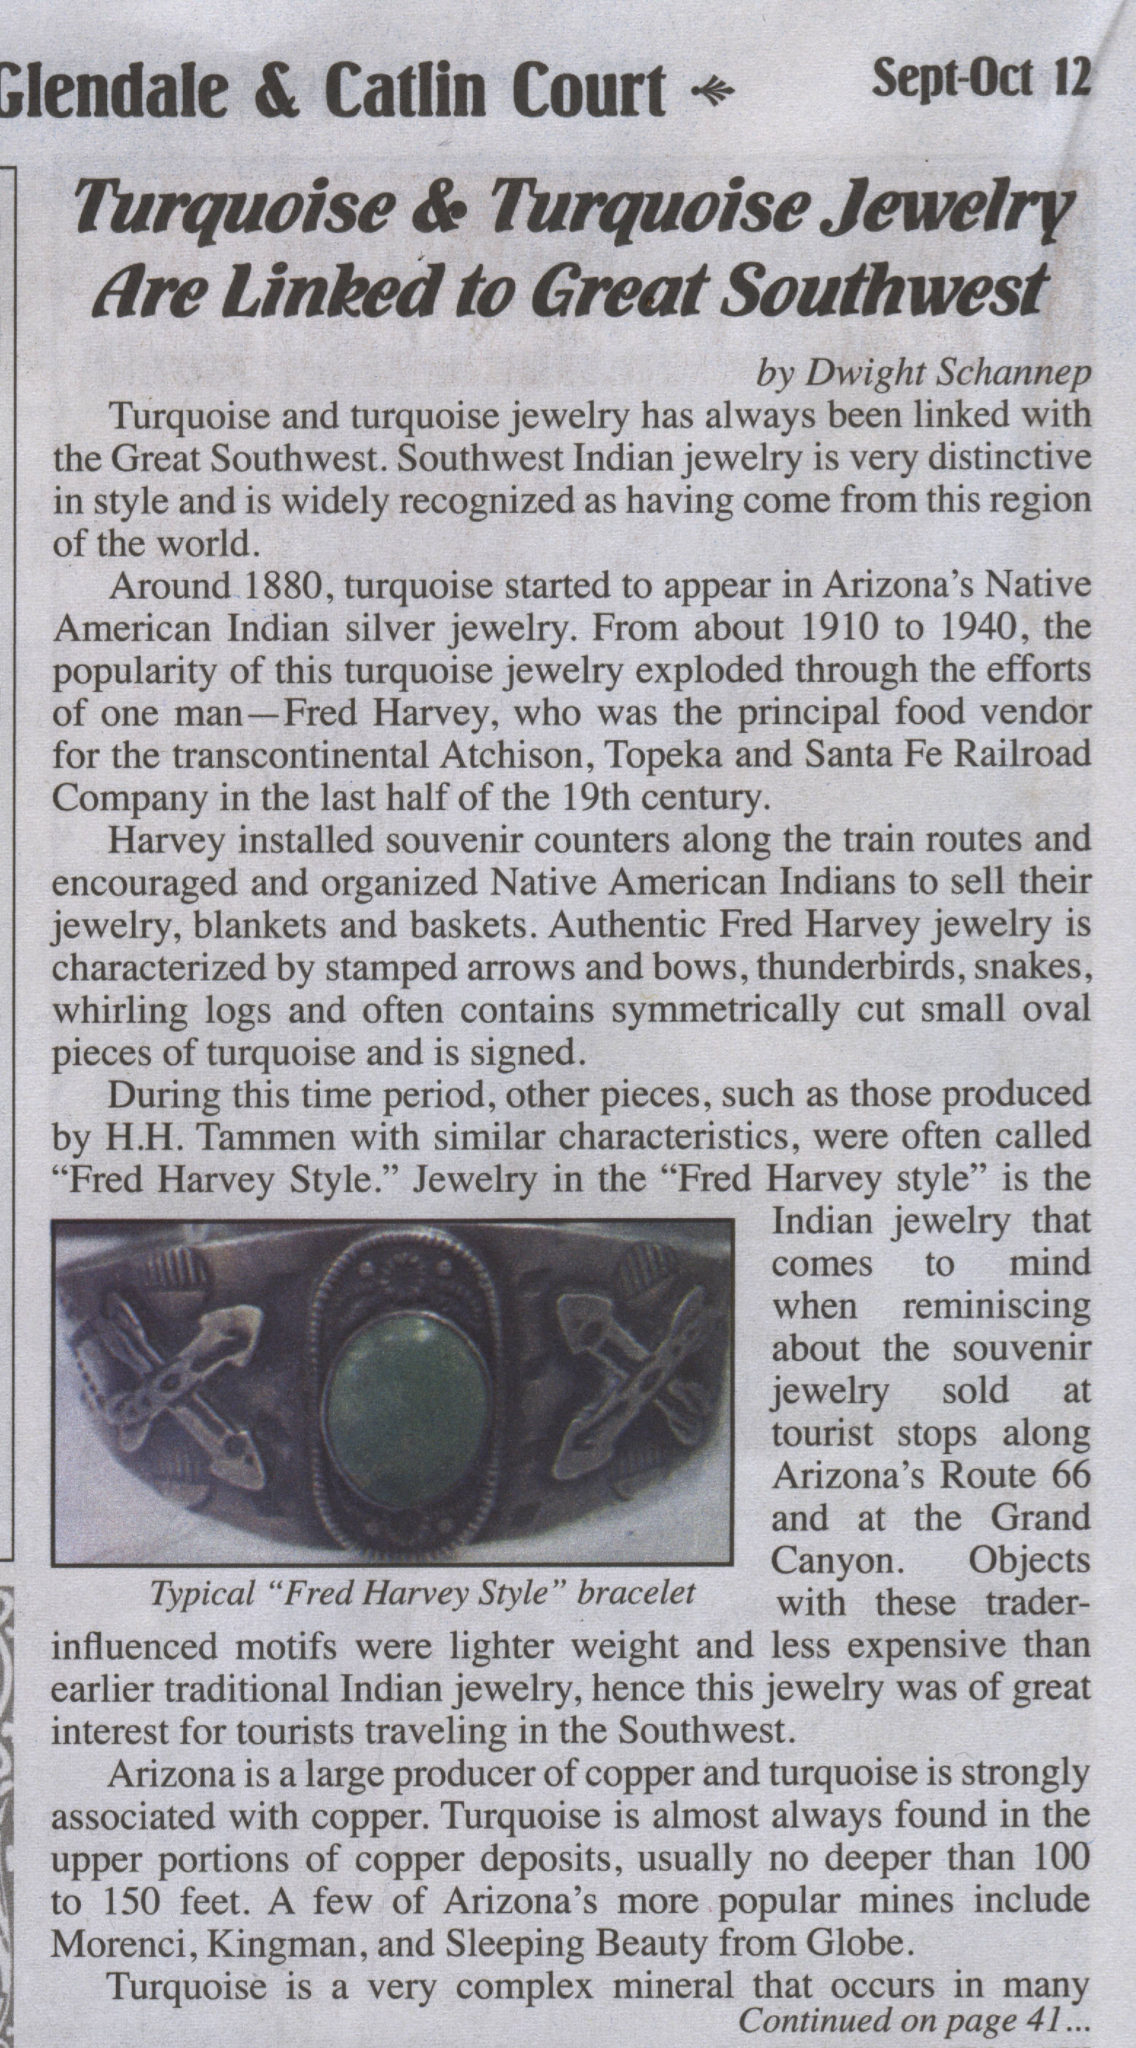 Tucson Turquoise featured in the Antique Register